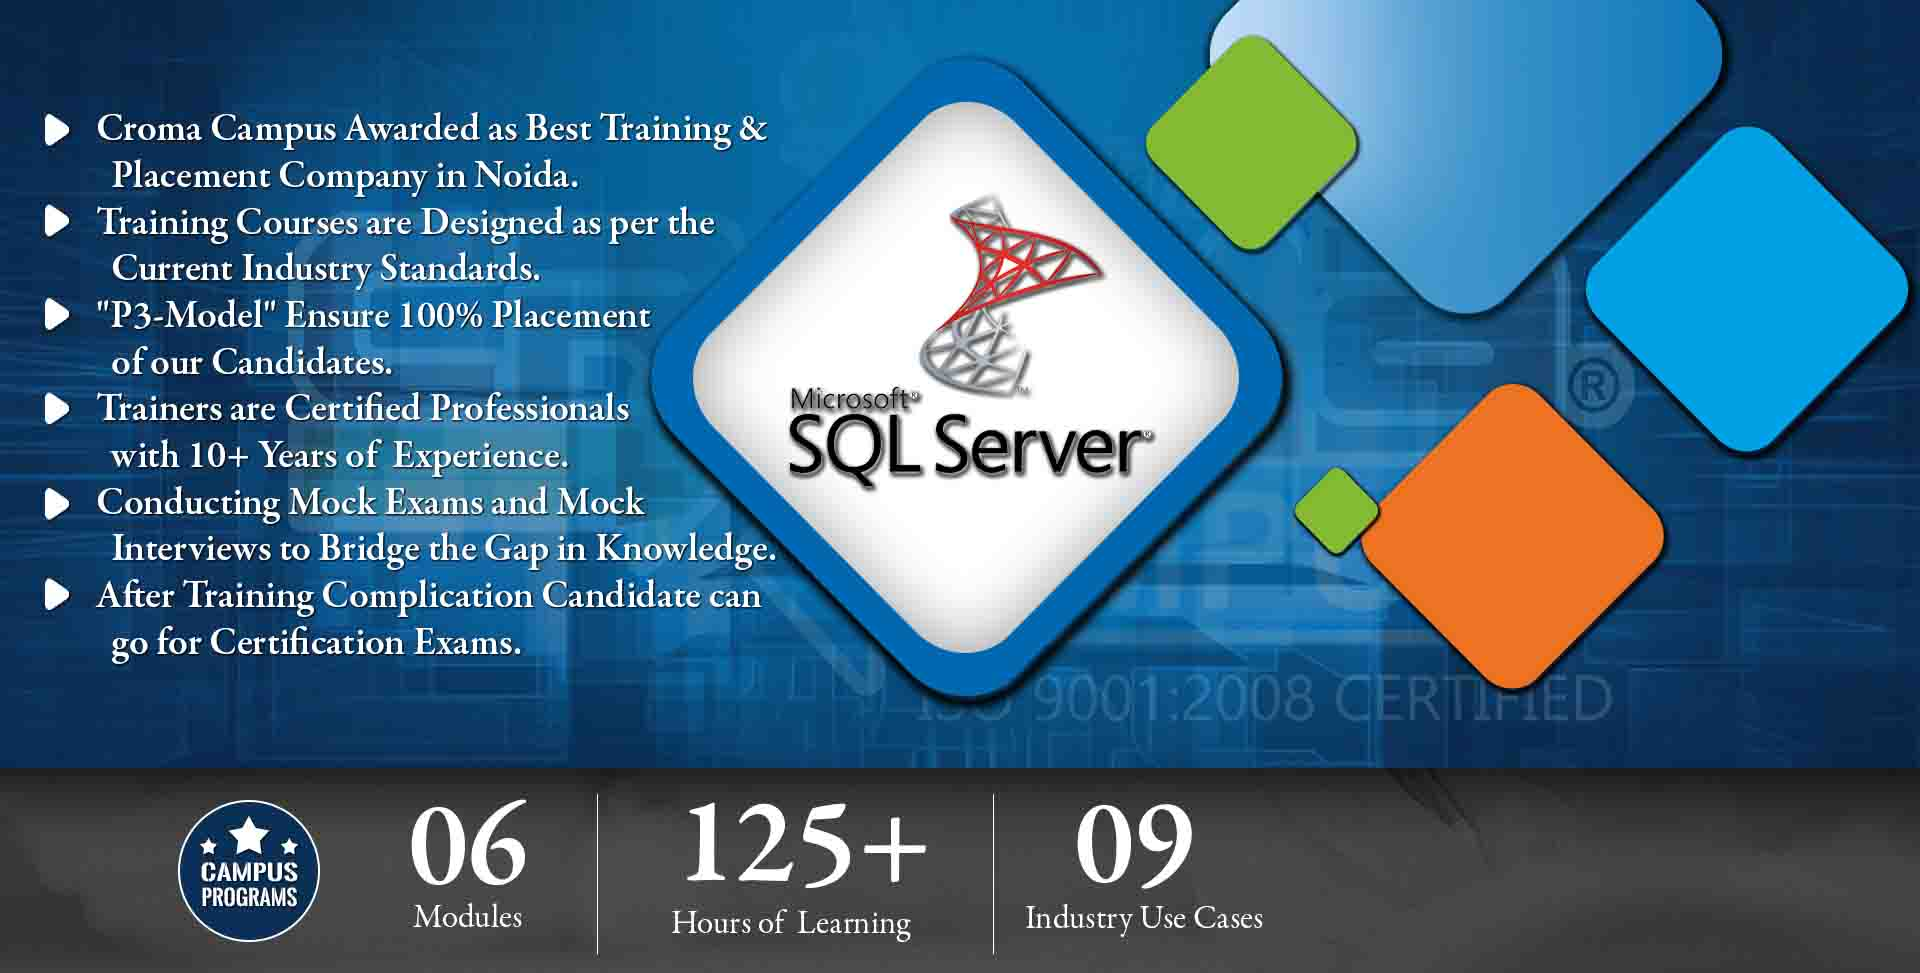 SQL Server Training in Noida- Croma Campus